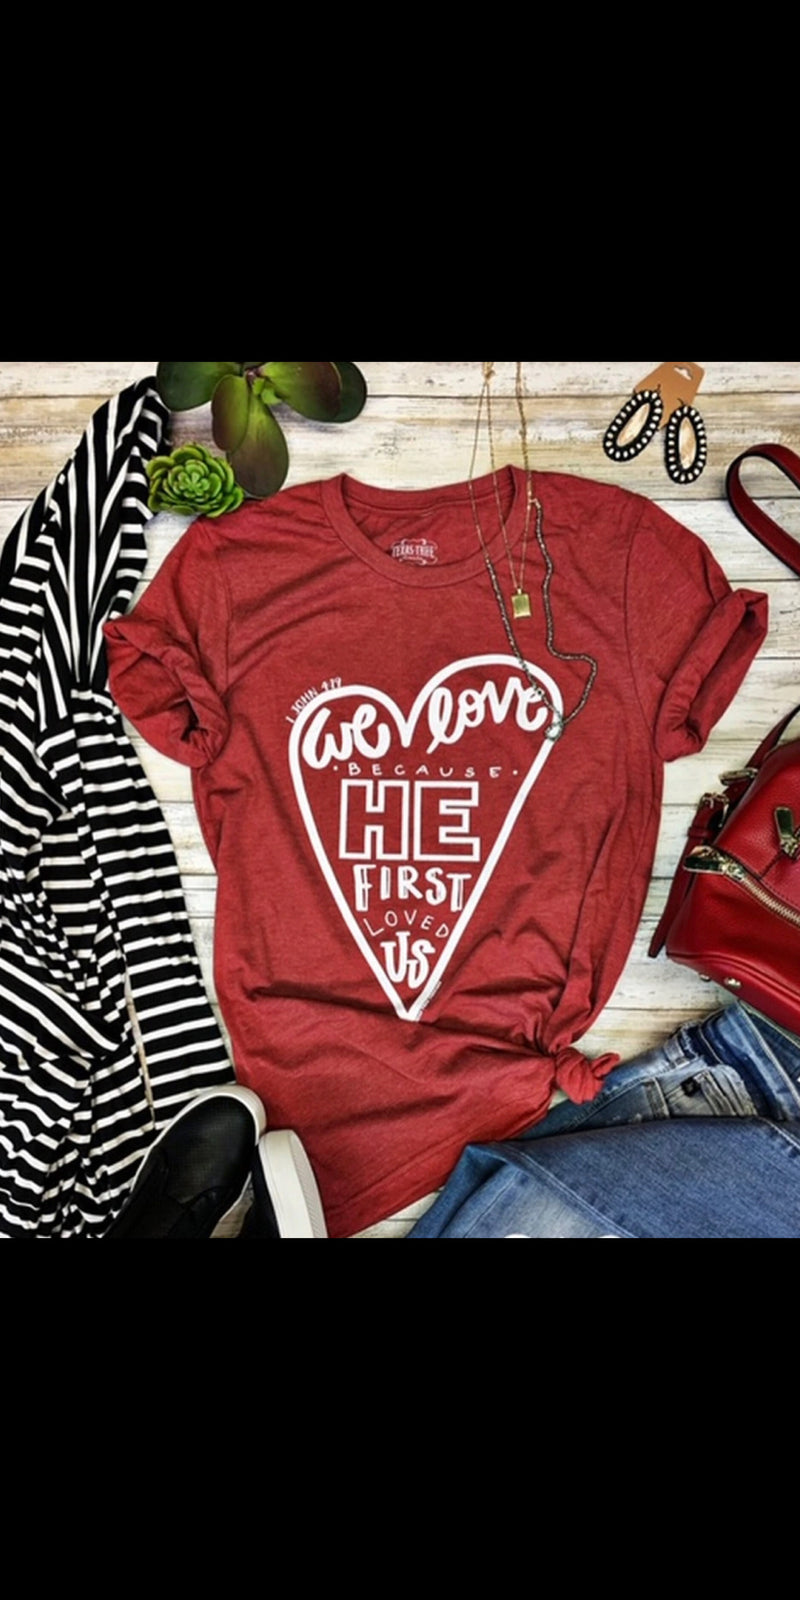 Because He First Loved Us Top - Also in Plus Size